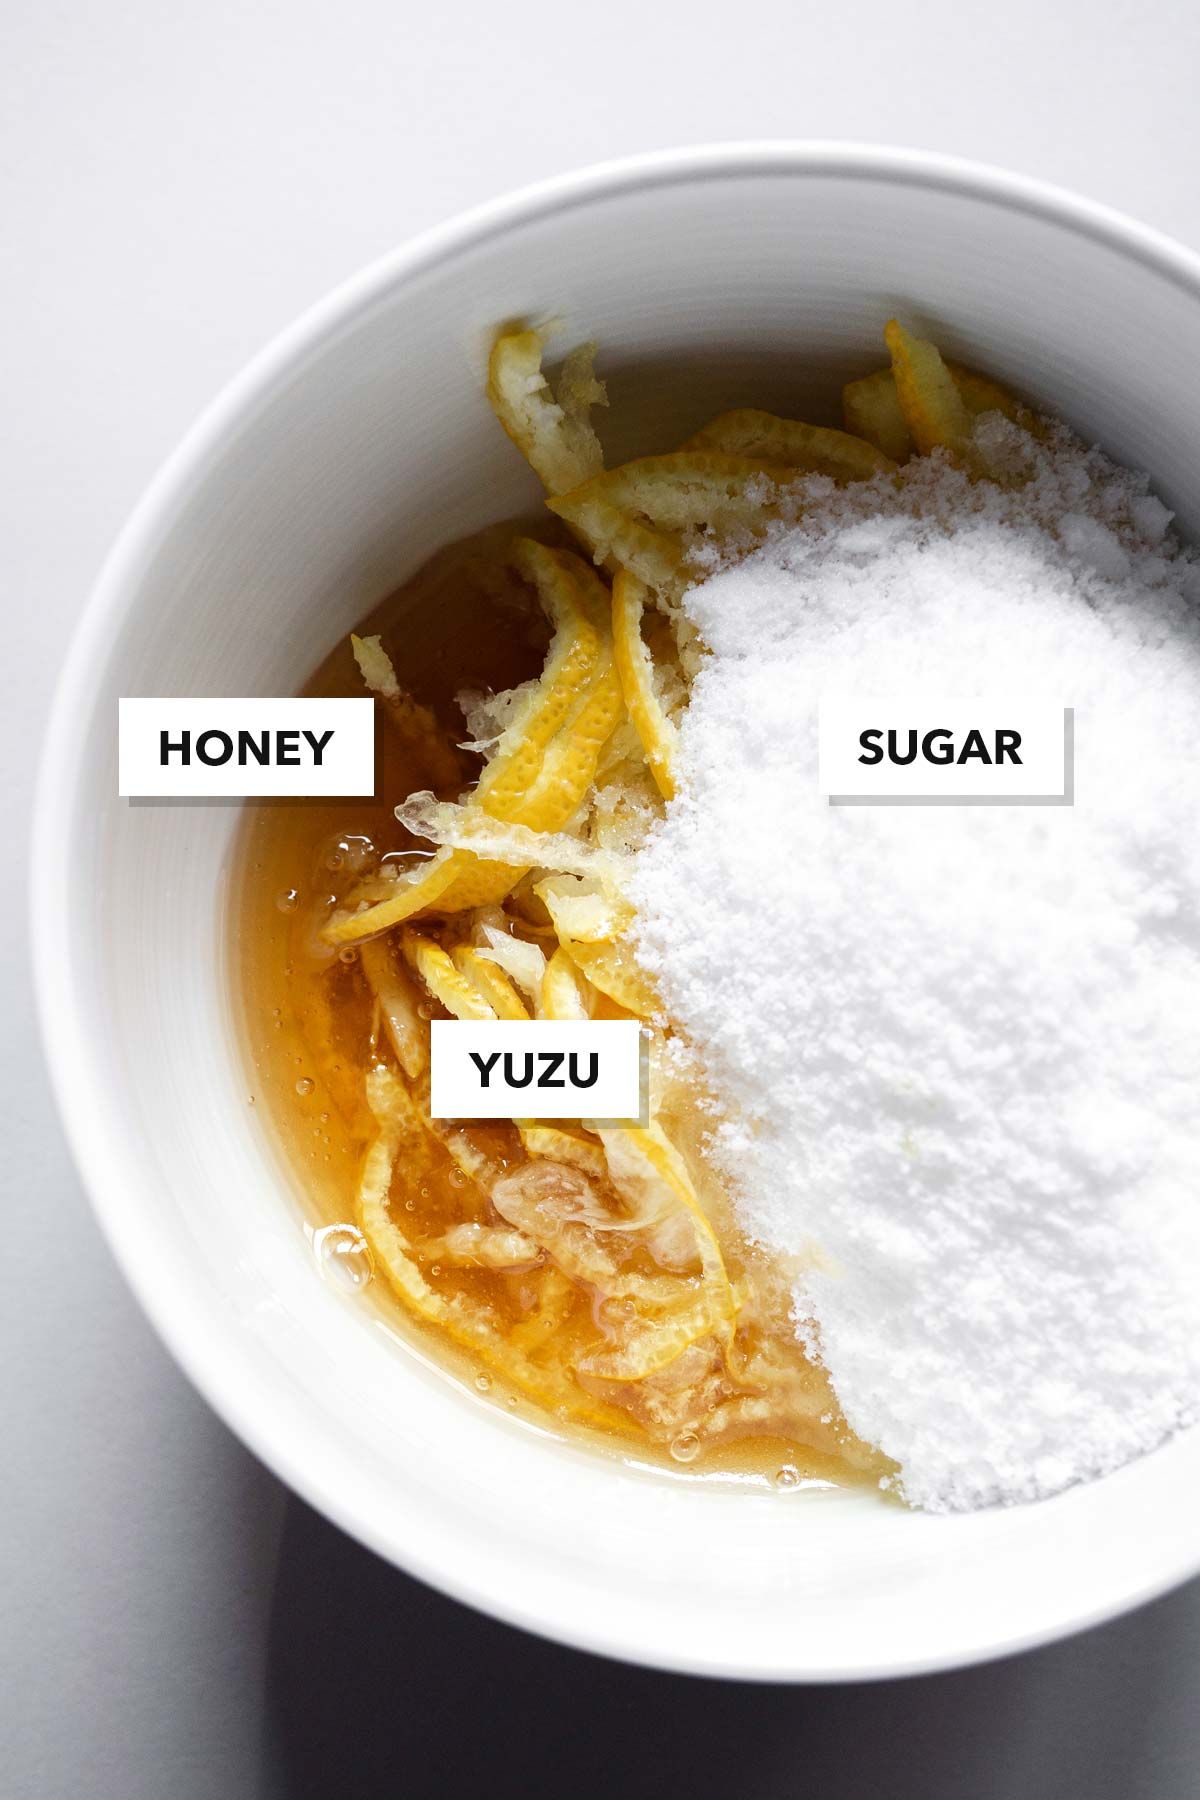 Honey citron tea ingredients in a bowl.